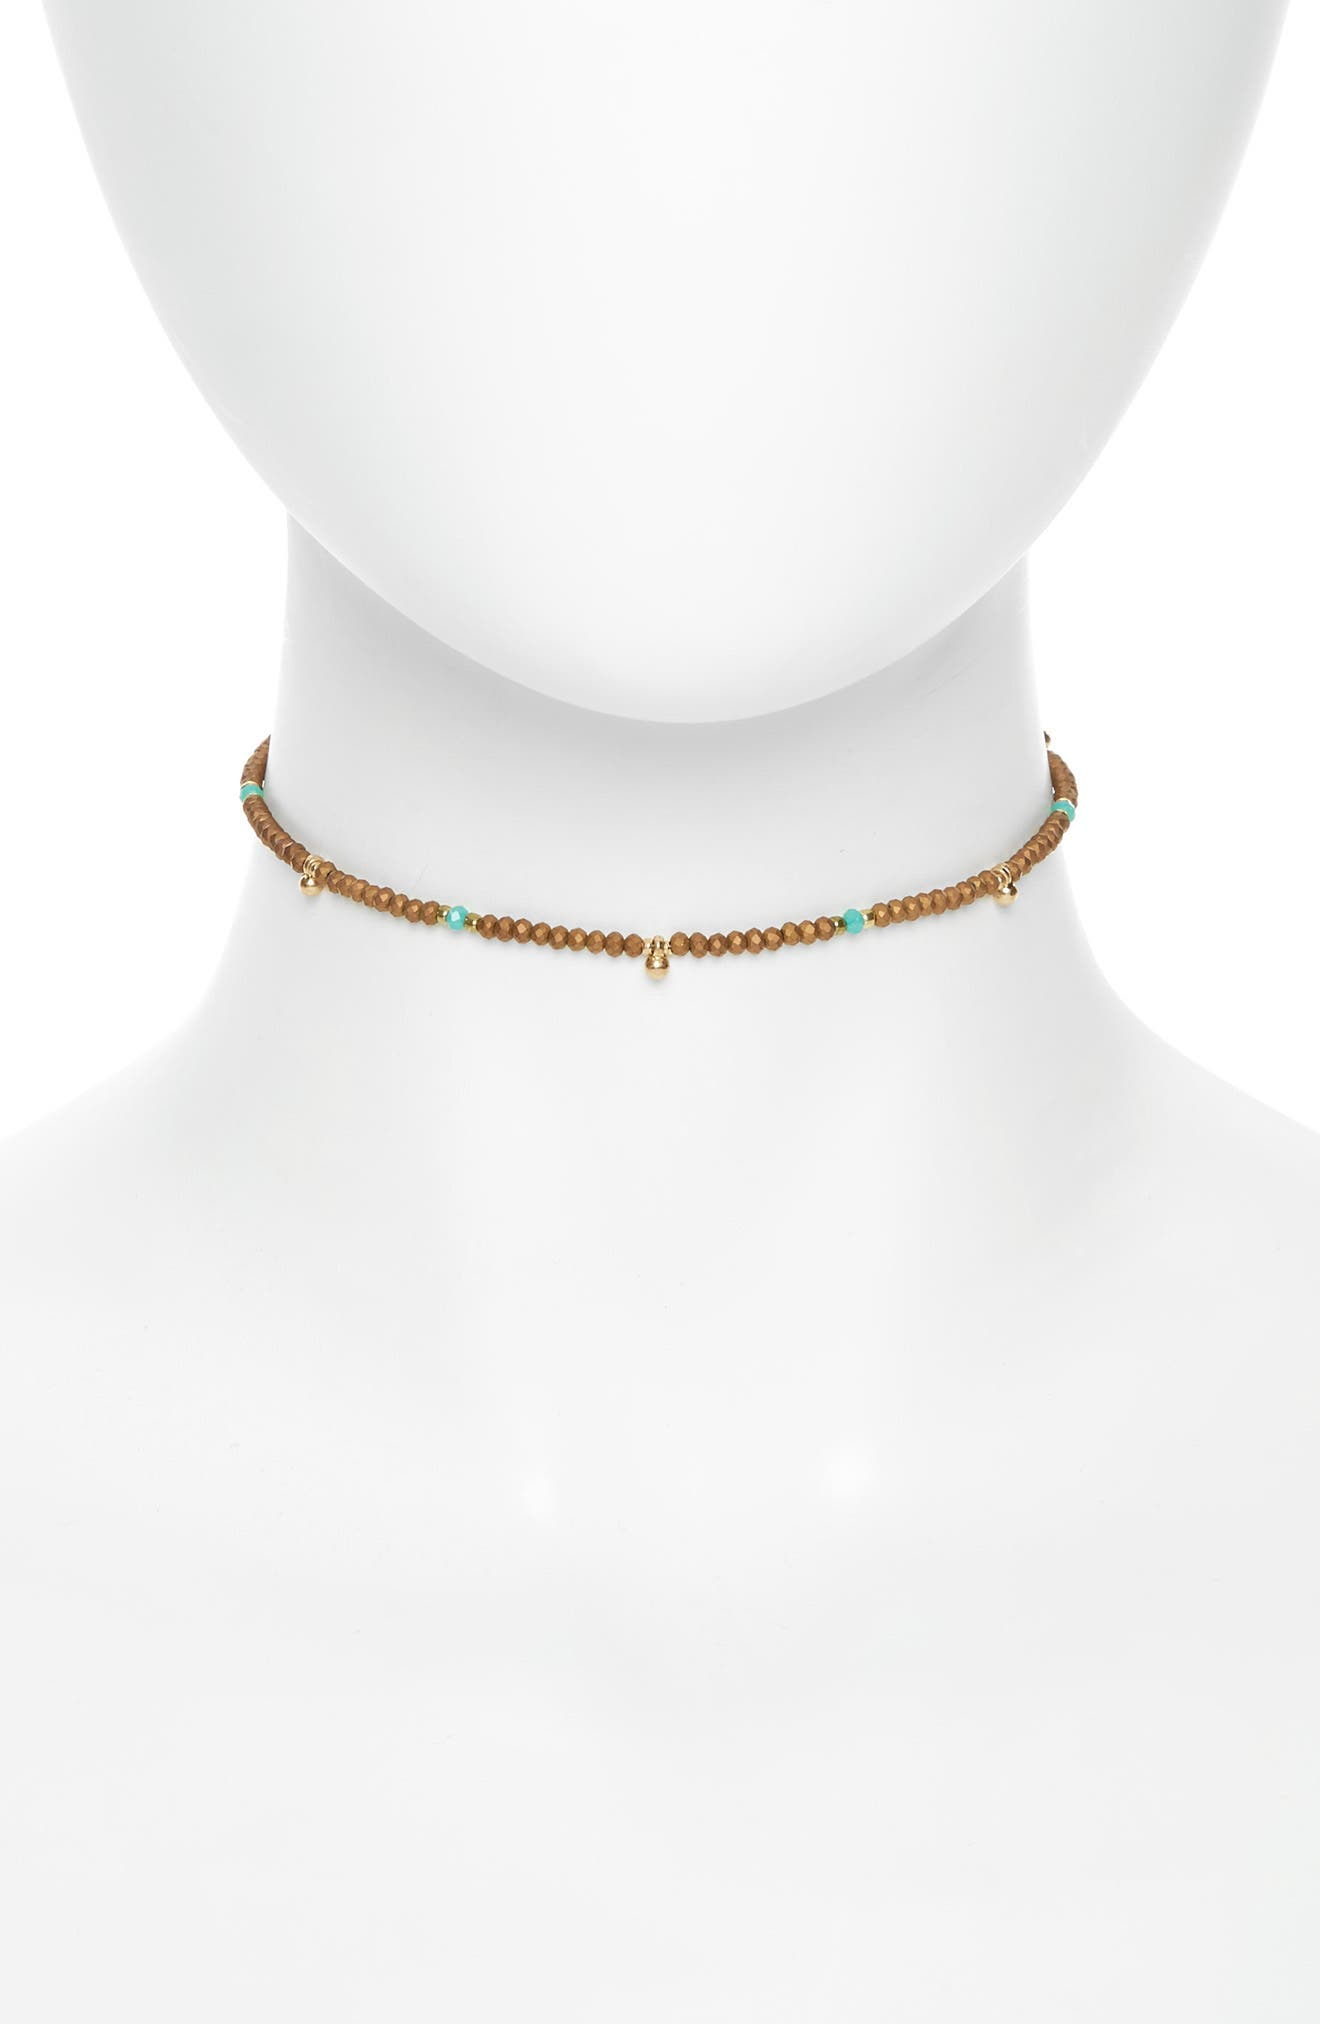 CANVAS JEWELRY Canvas Beaded Tassel Choker